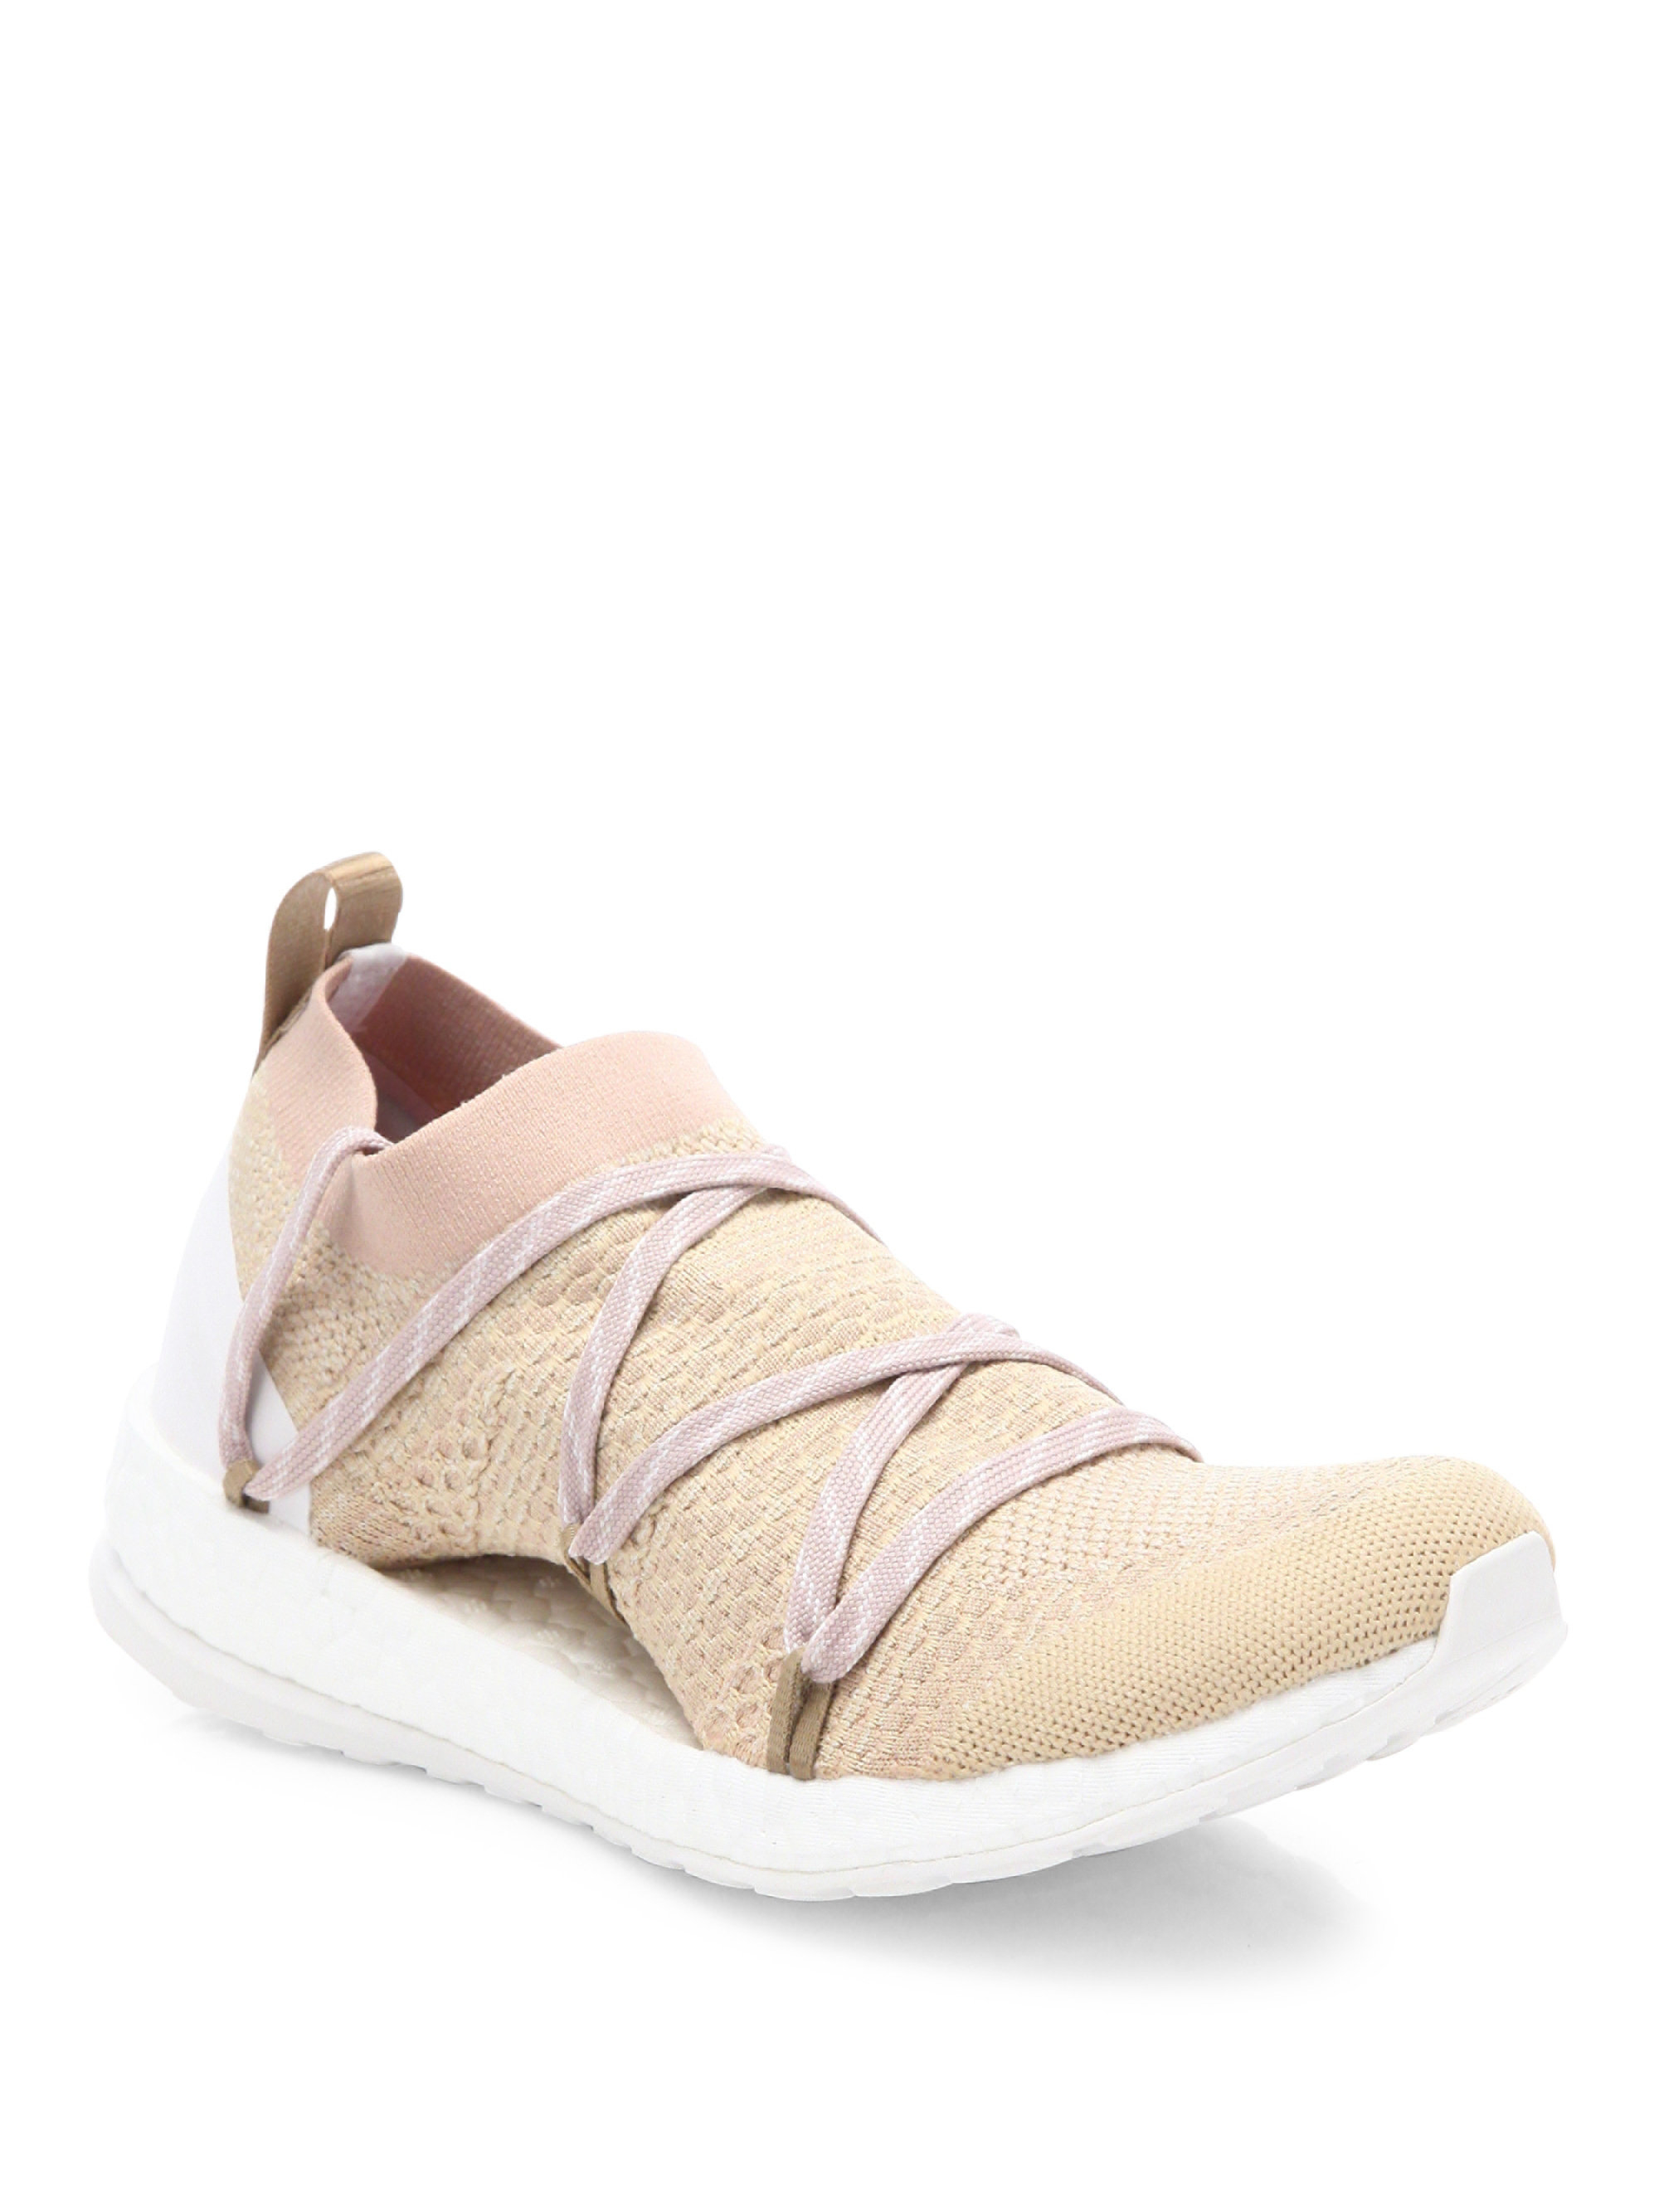 7df5b0b41 ... reduced lyst adidas by stella mccartney pure boost x running sneakers  835c1 b3a58